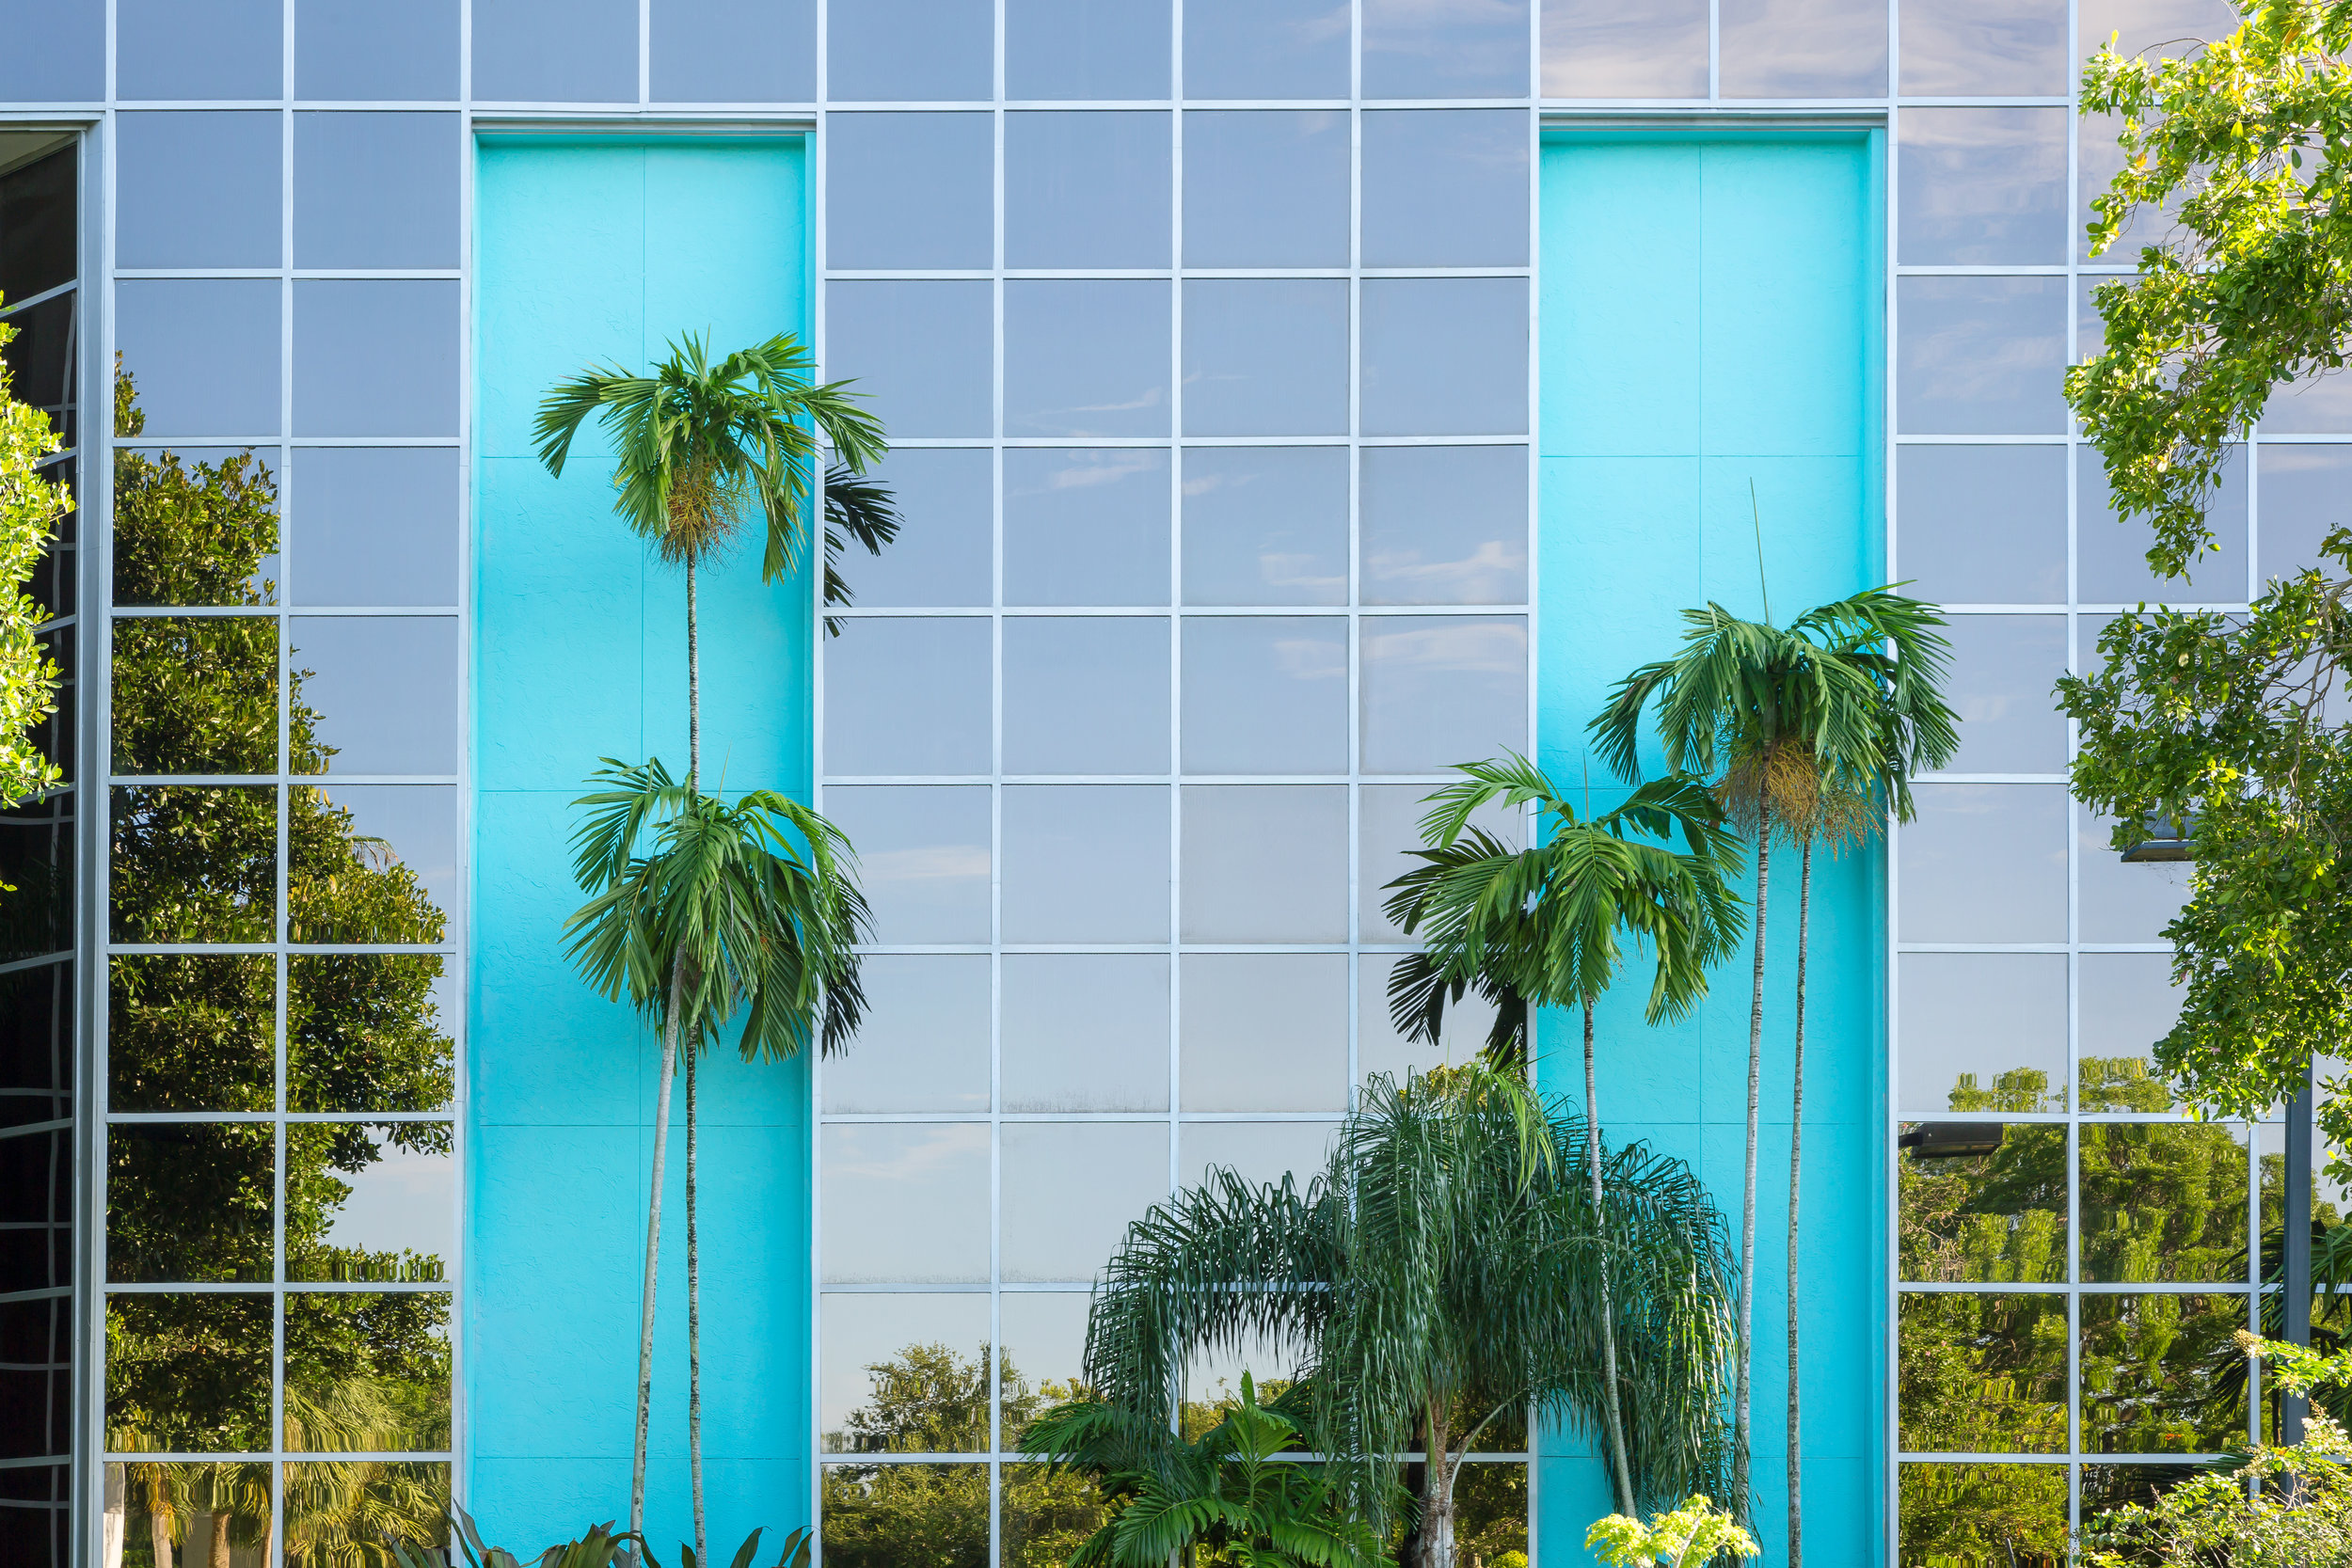 Sawgrass-Palms-Blue-Wall.jpg